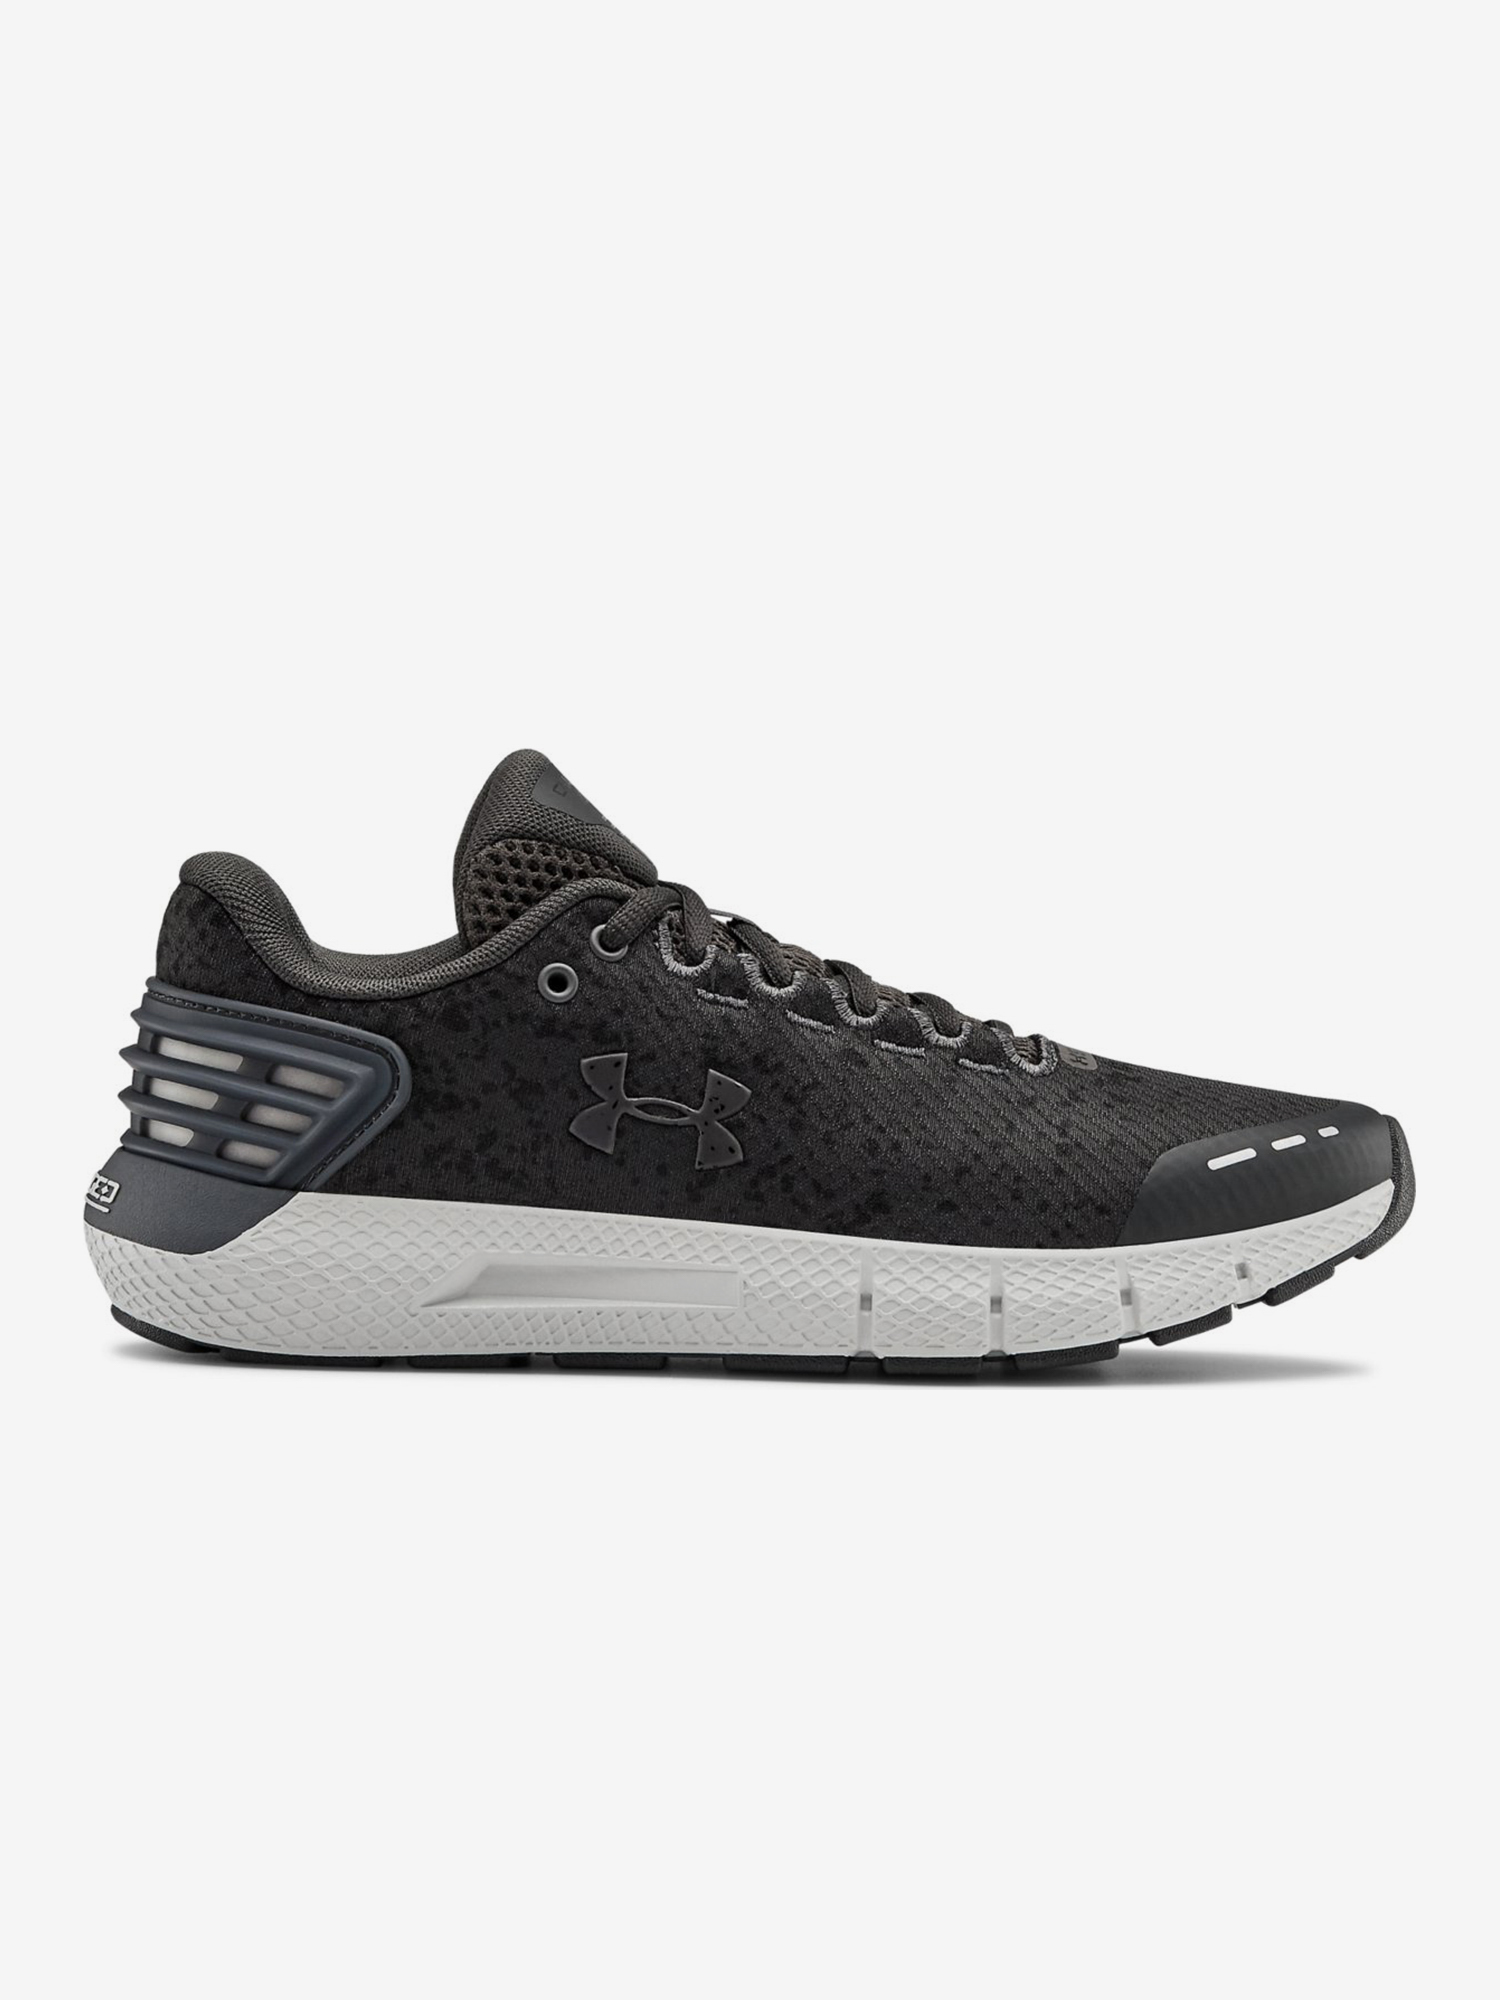 Boty Under Armour W Charged Rogue Storm-Blk